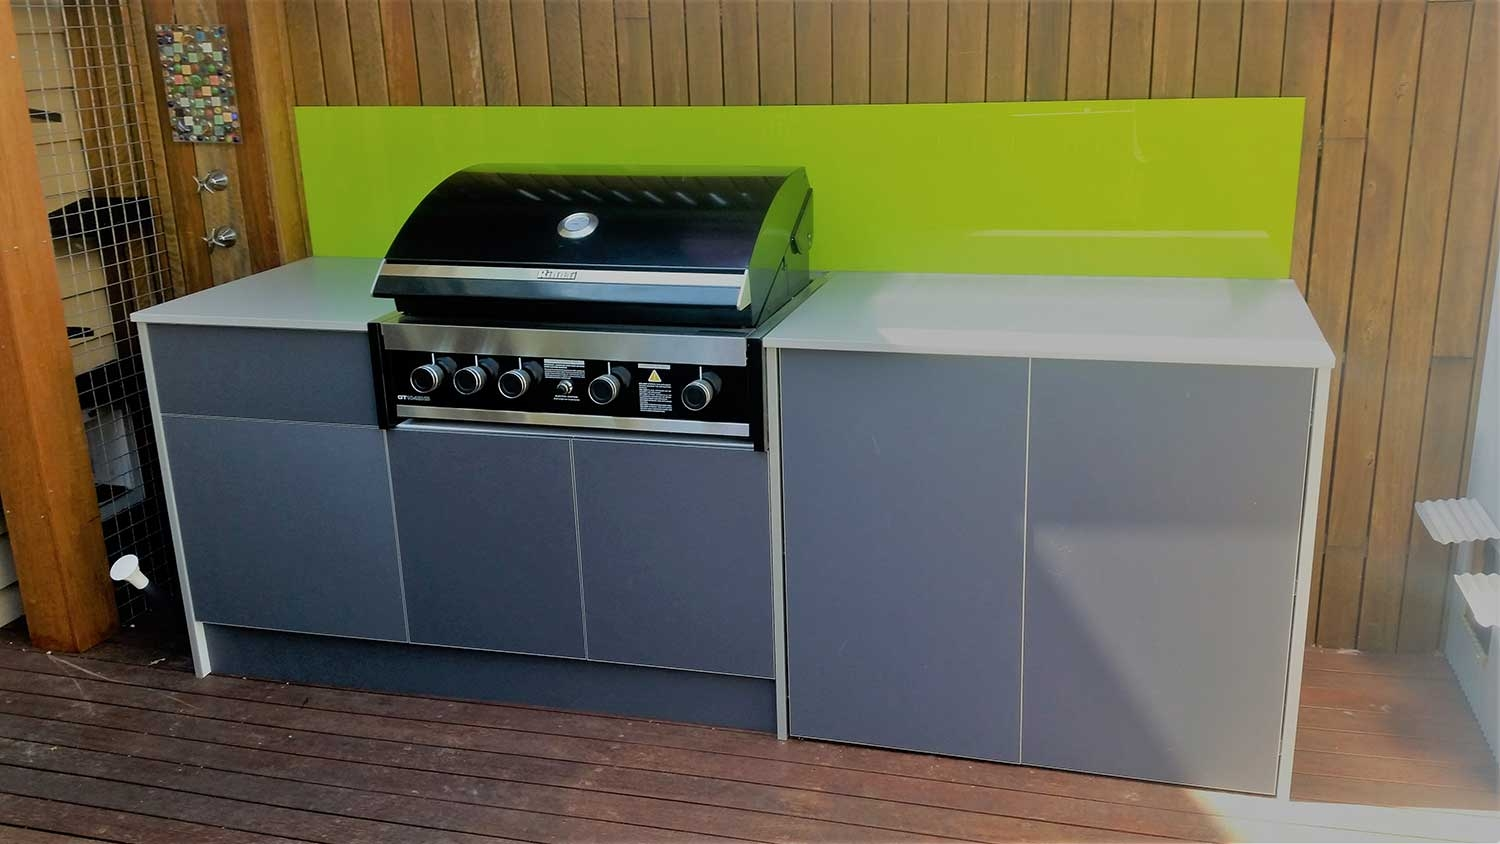 Rinnai-GT104-Black-Iron-Grey-Outdoor-Kitchen-By-LimeTree-Alfresco